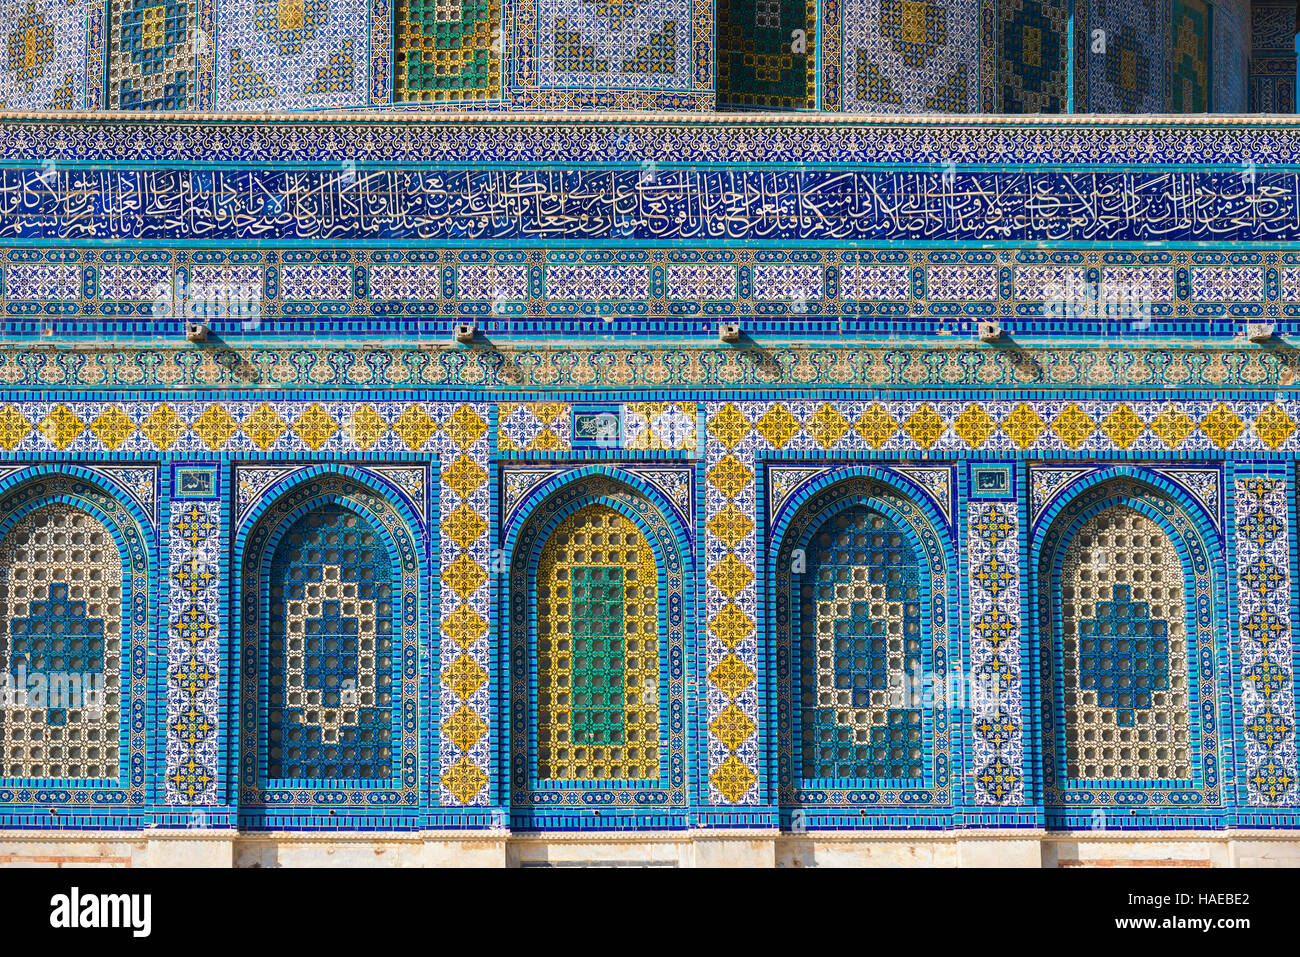 Detail of the Mosaic on the Dome of the Rock. Jerusalem, Israel - Stock Image